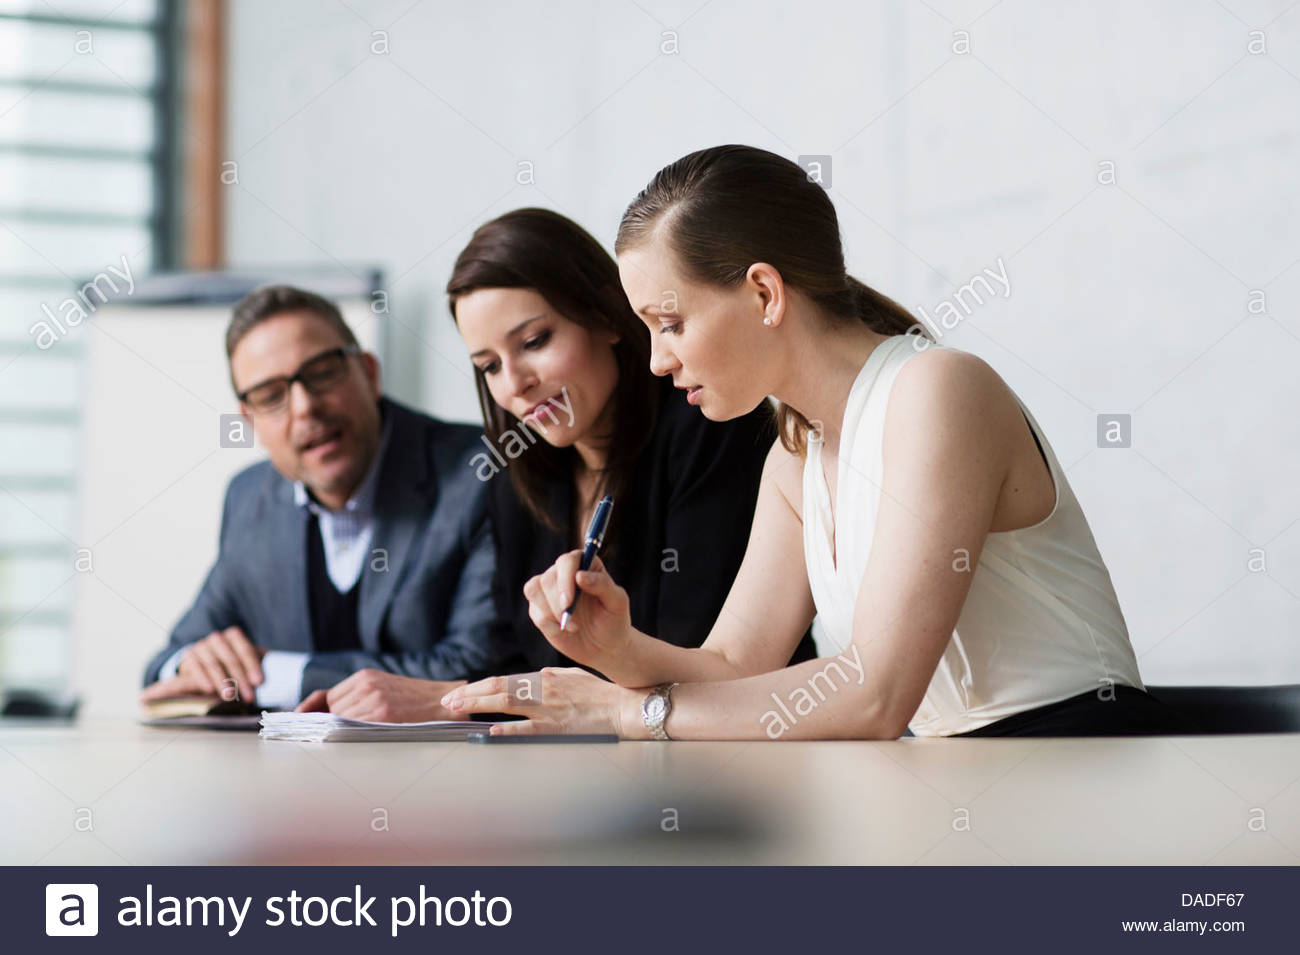 Three people in meeting - Stock Image